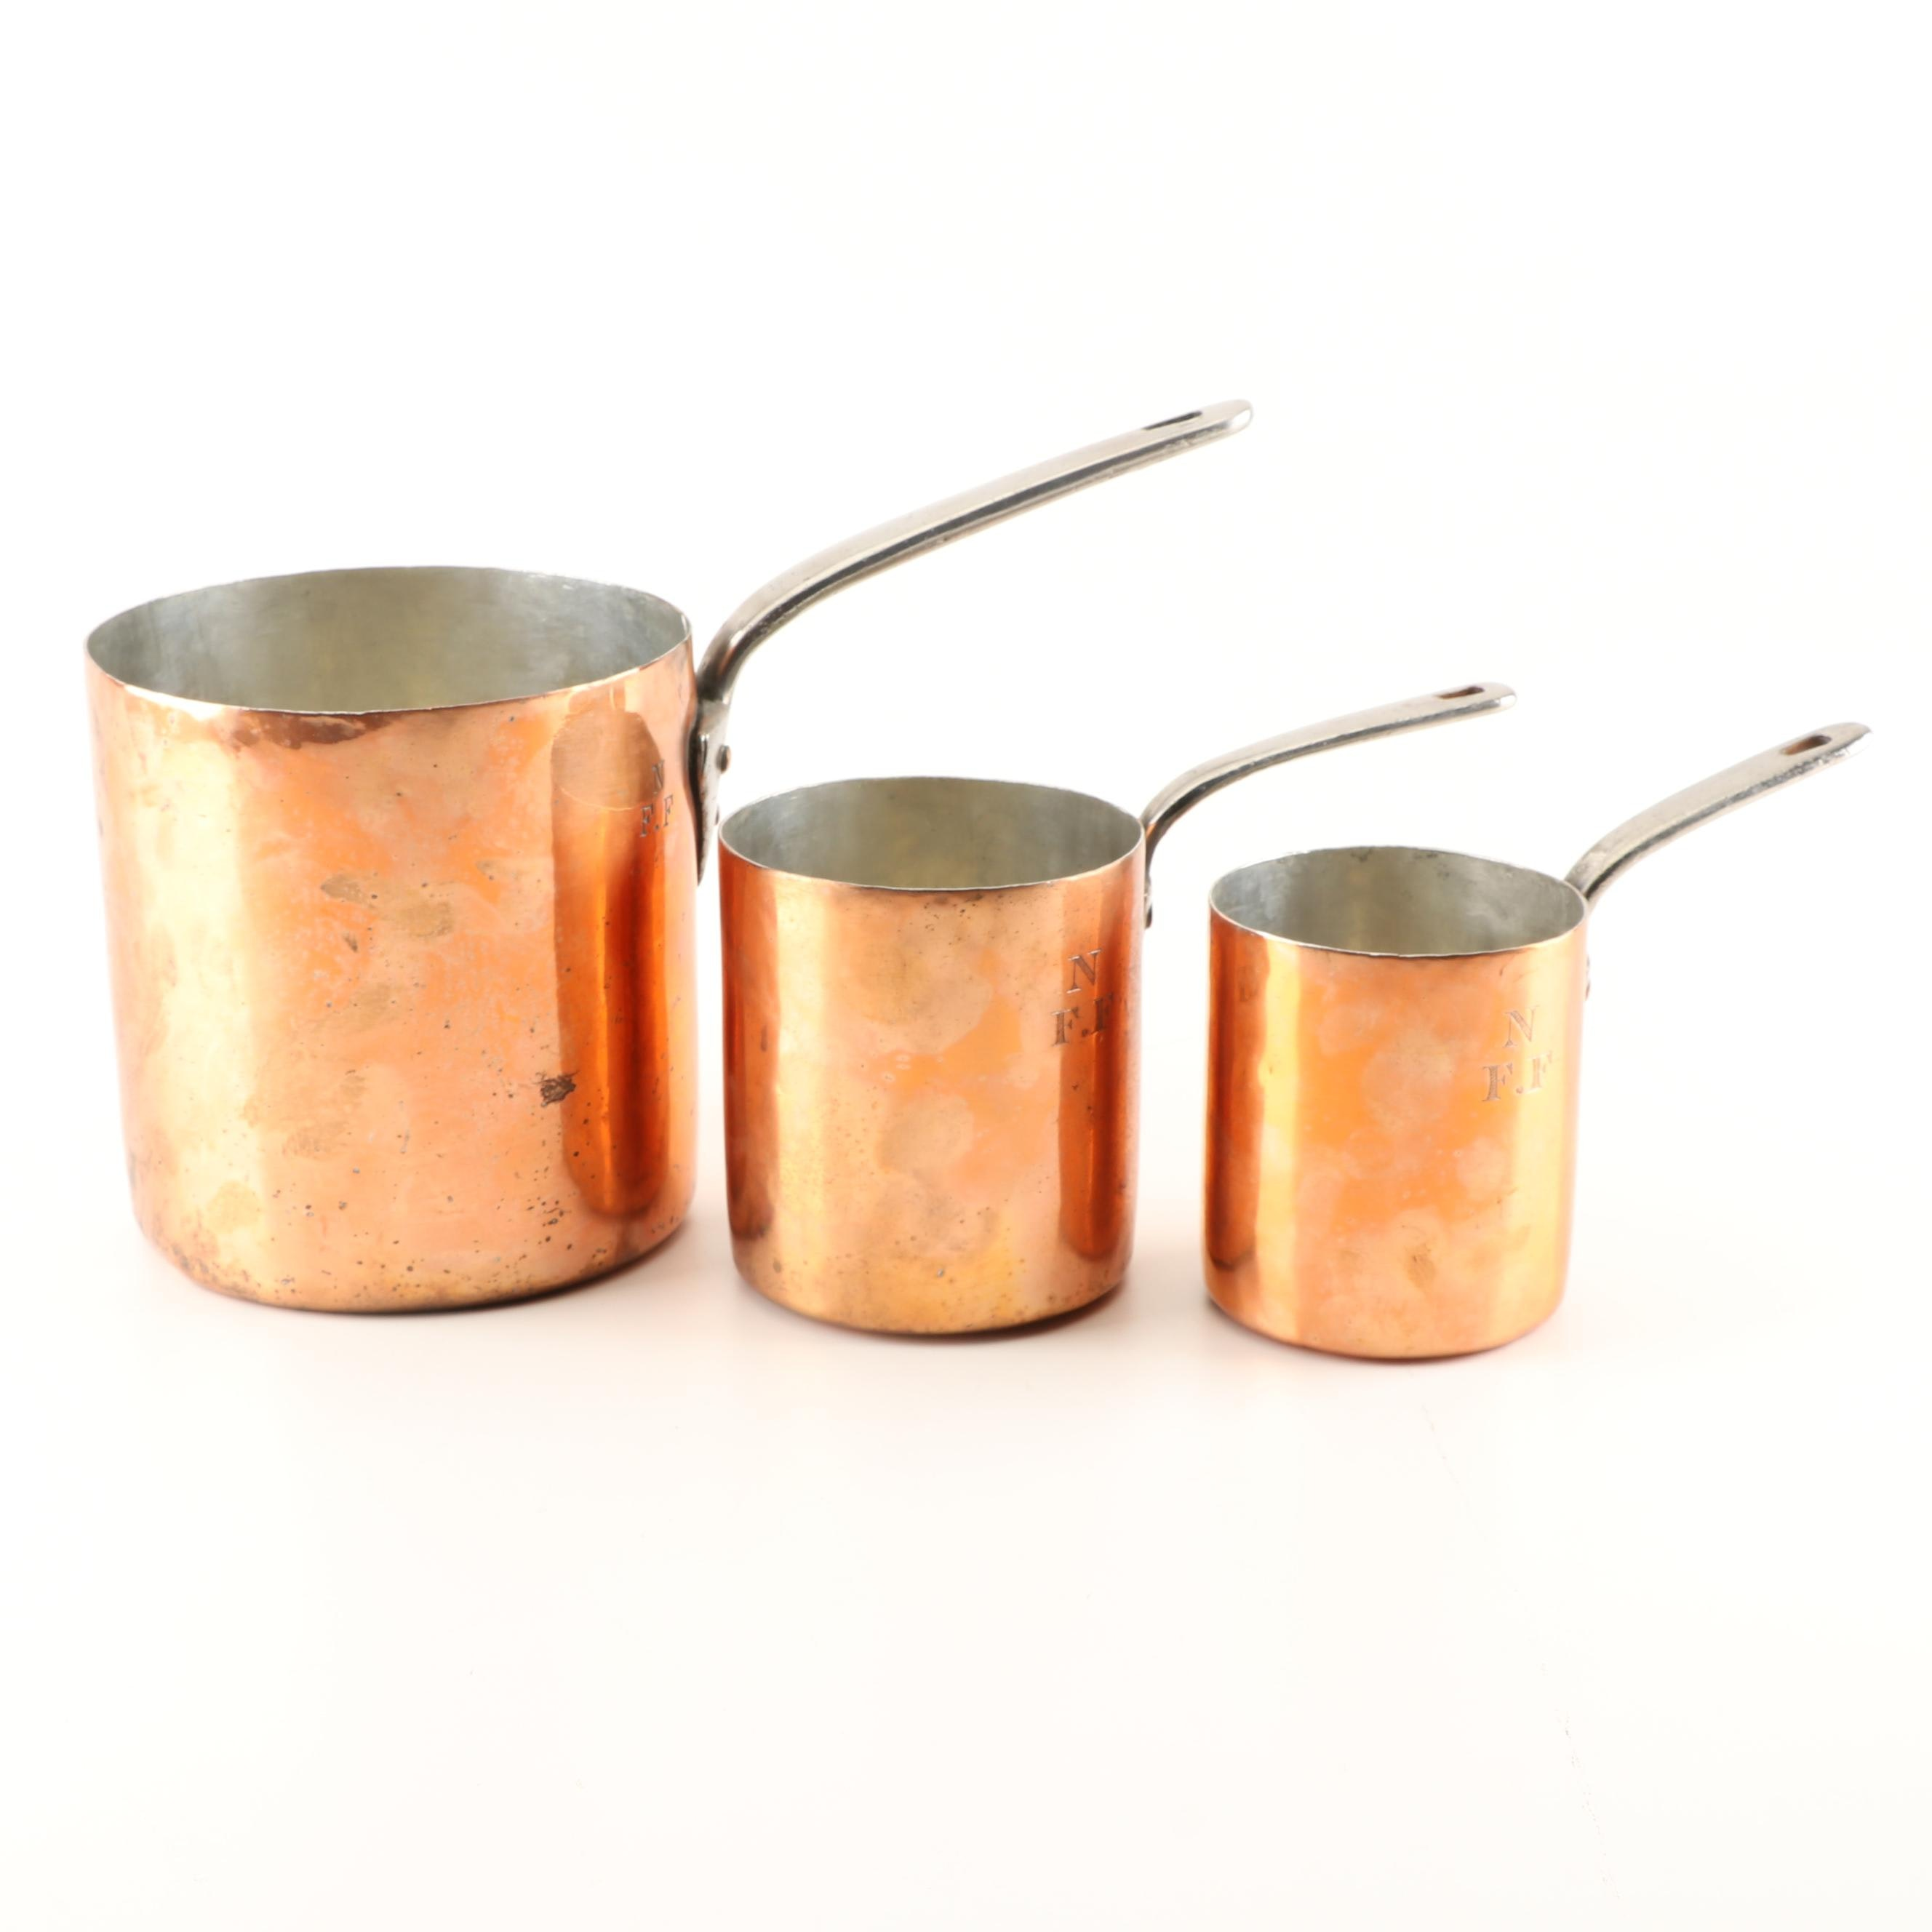 Three Jones Brothers Victorian English, Tin-Lined Copper Pots, Late 19th Century